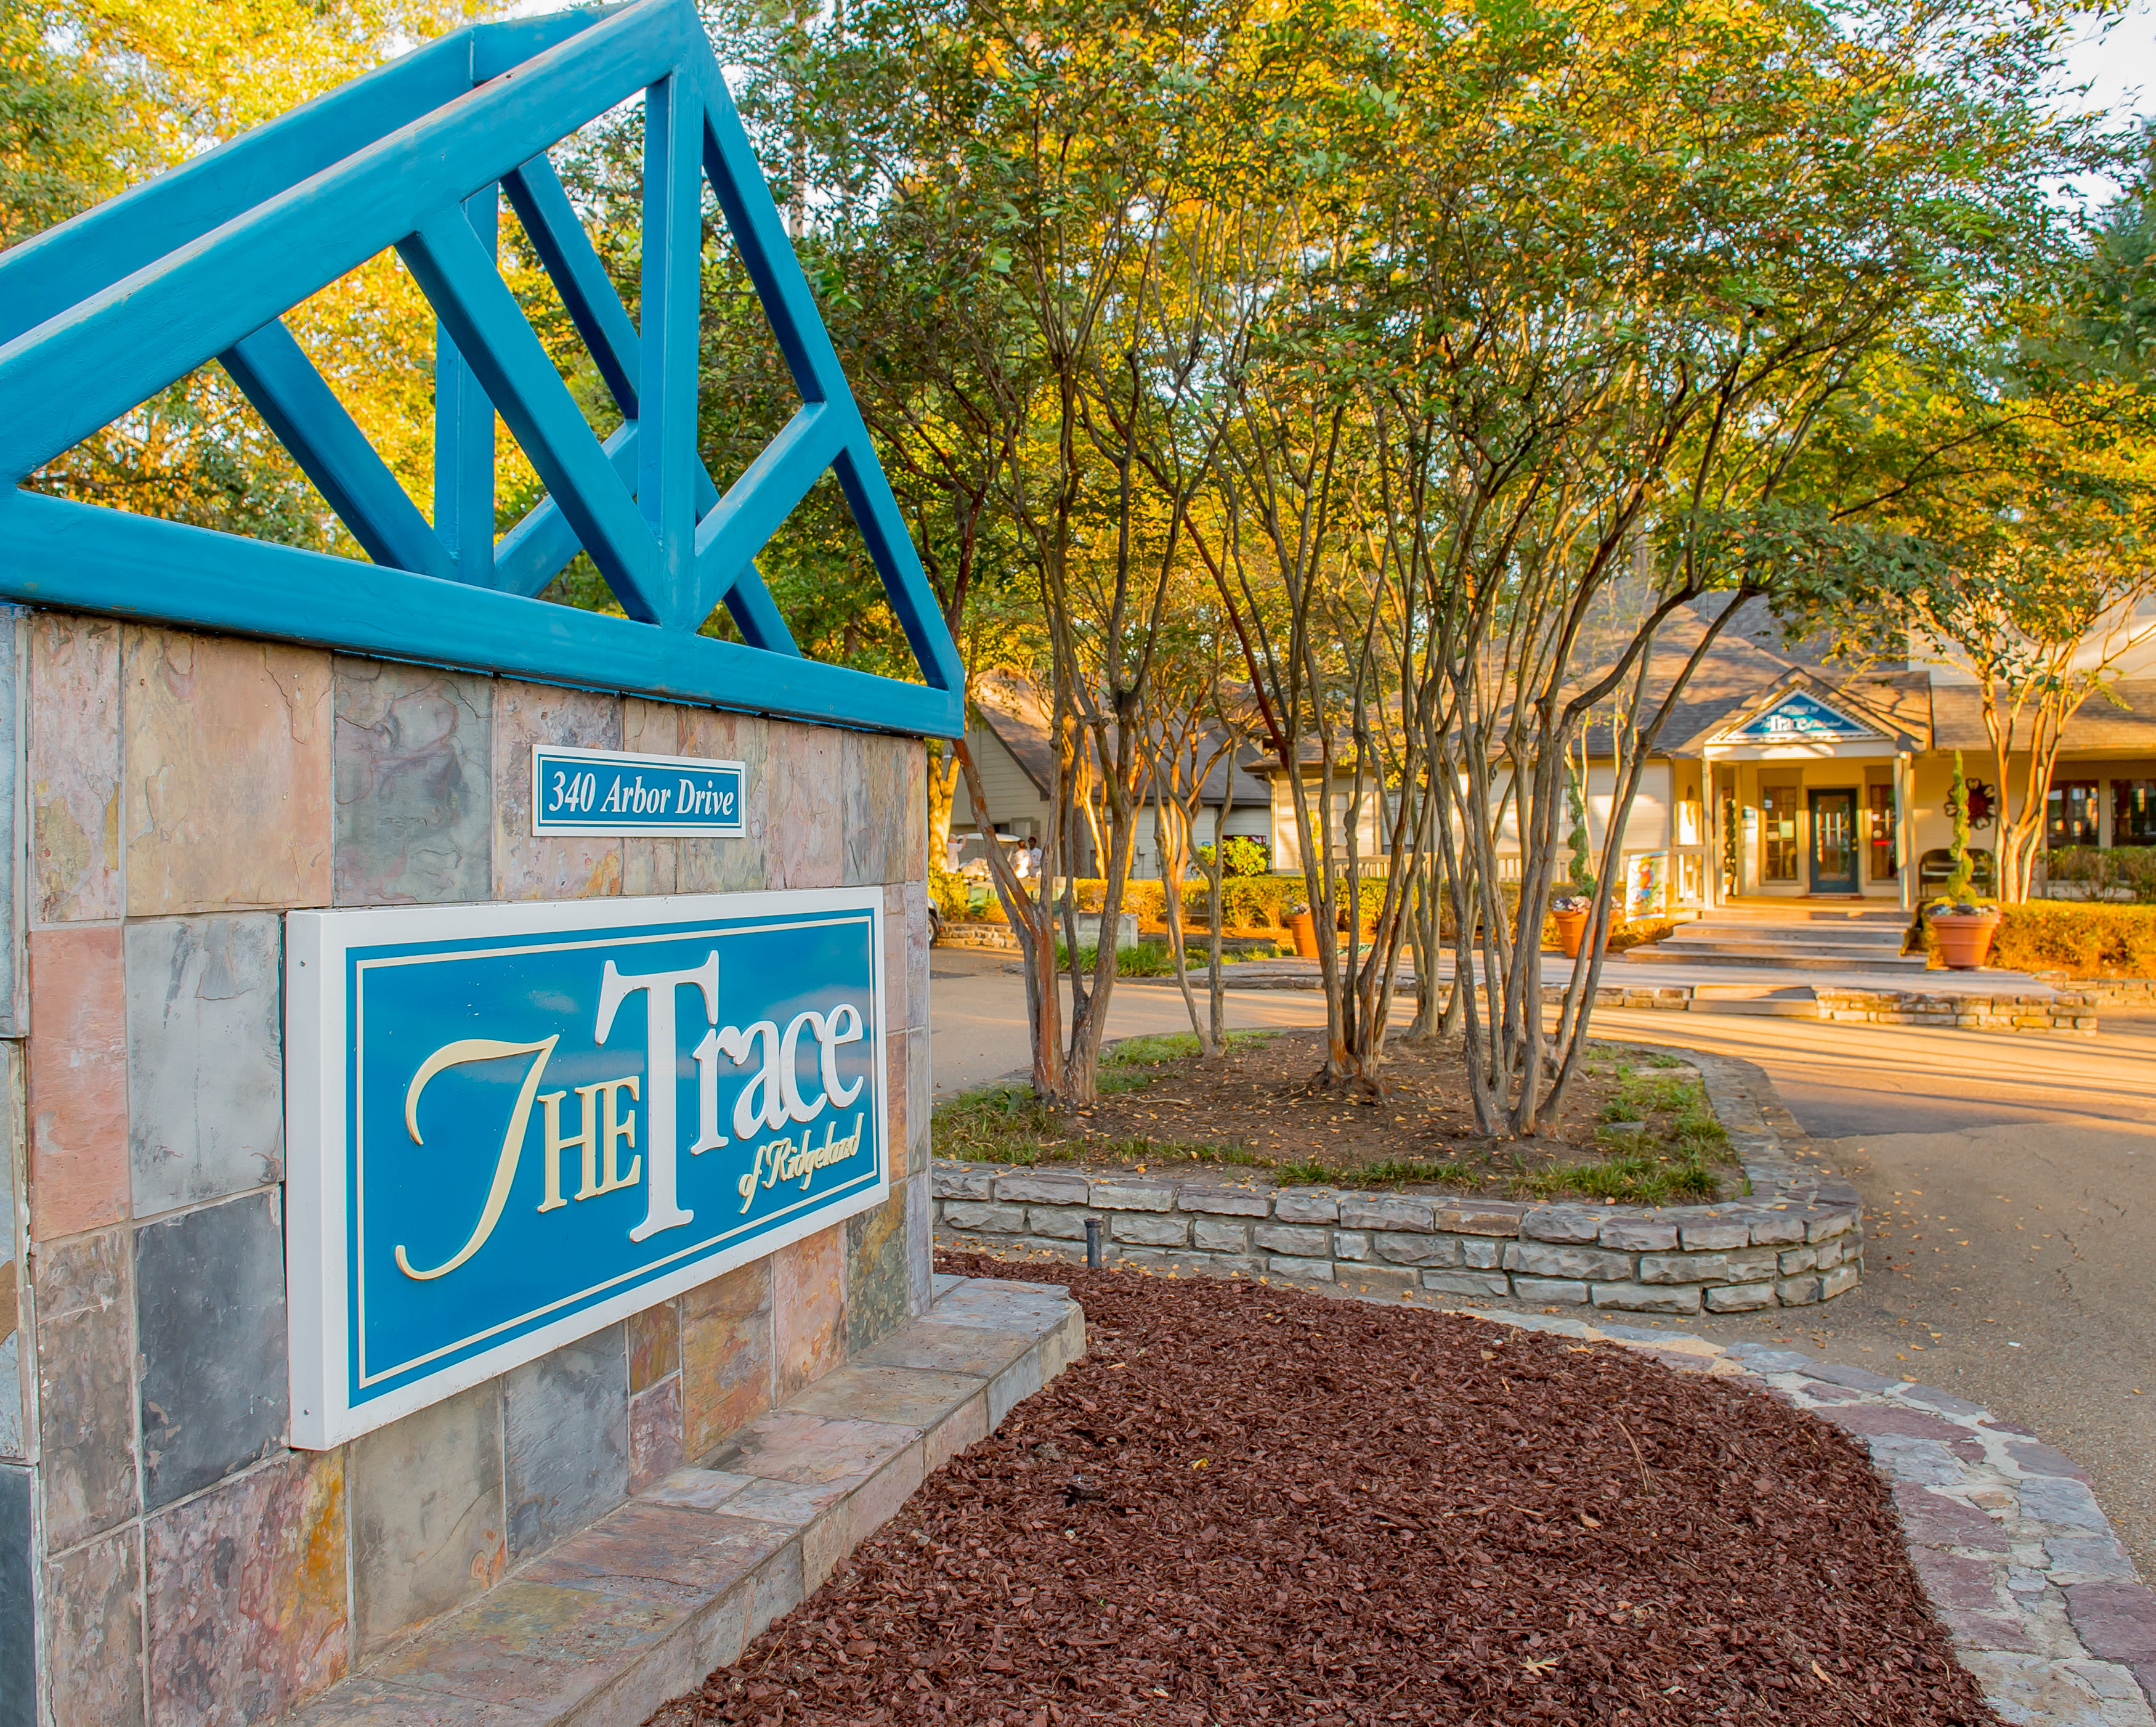 Forest Ridge Apartments Jackson Ms Reviews - The Best Forest Of 2018